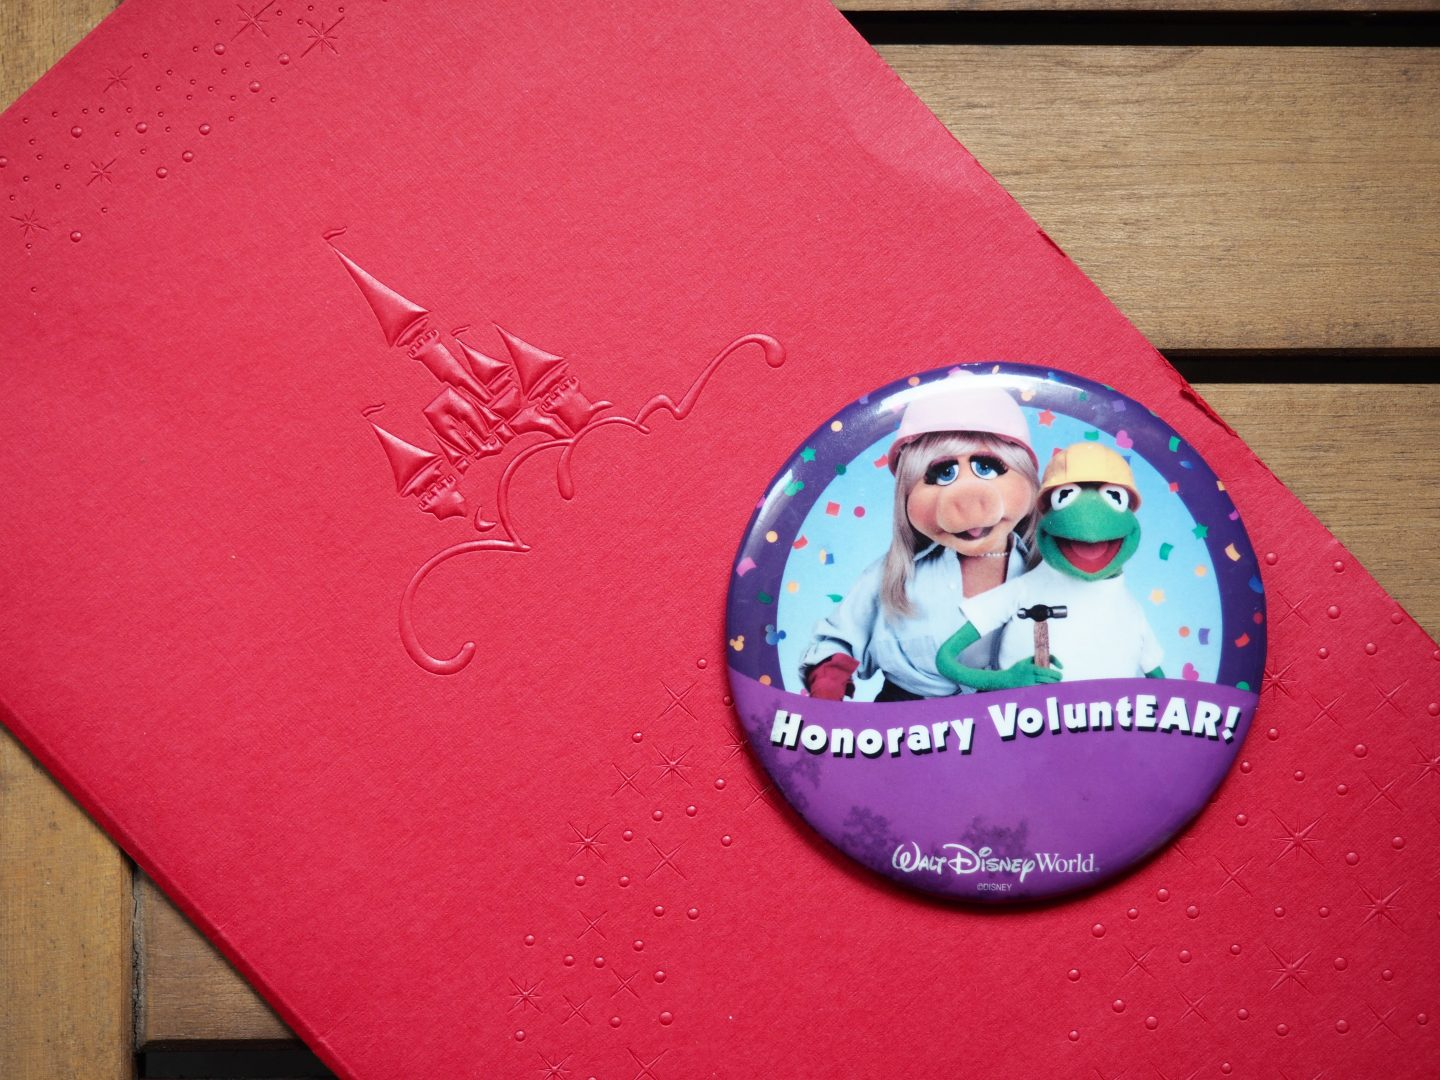 disney commemorative buttons and celebration buttons